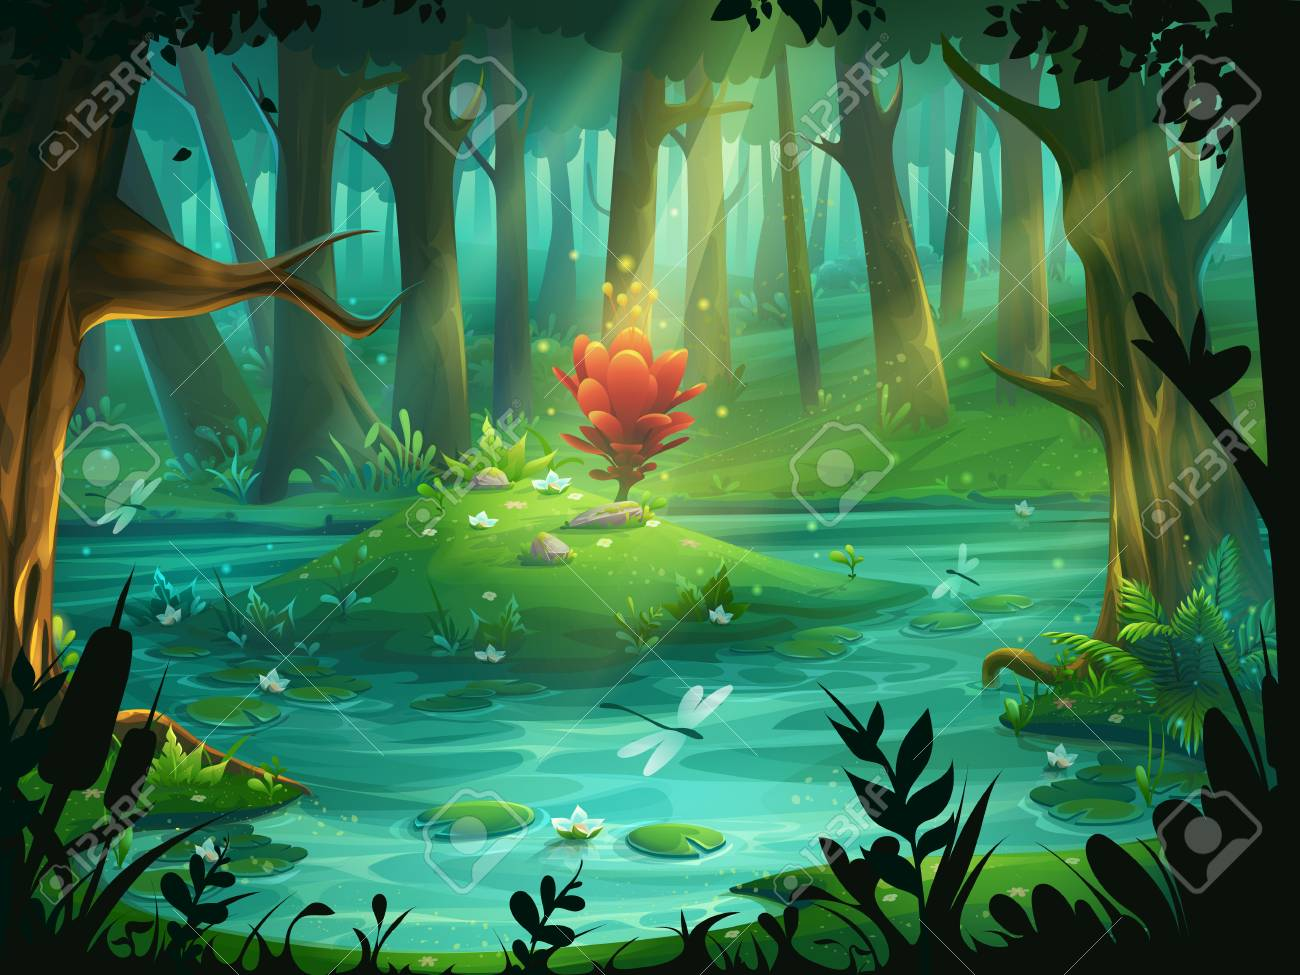 The Scarlet Flower on an island in a swamp in the forest - 93594061